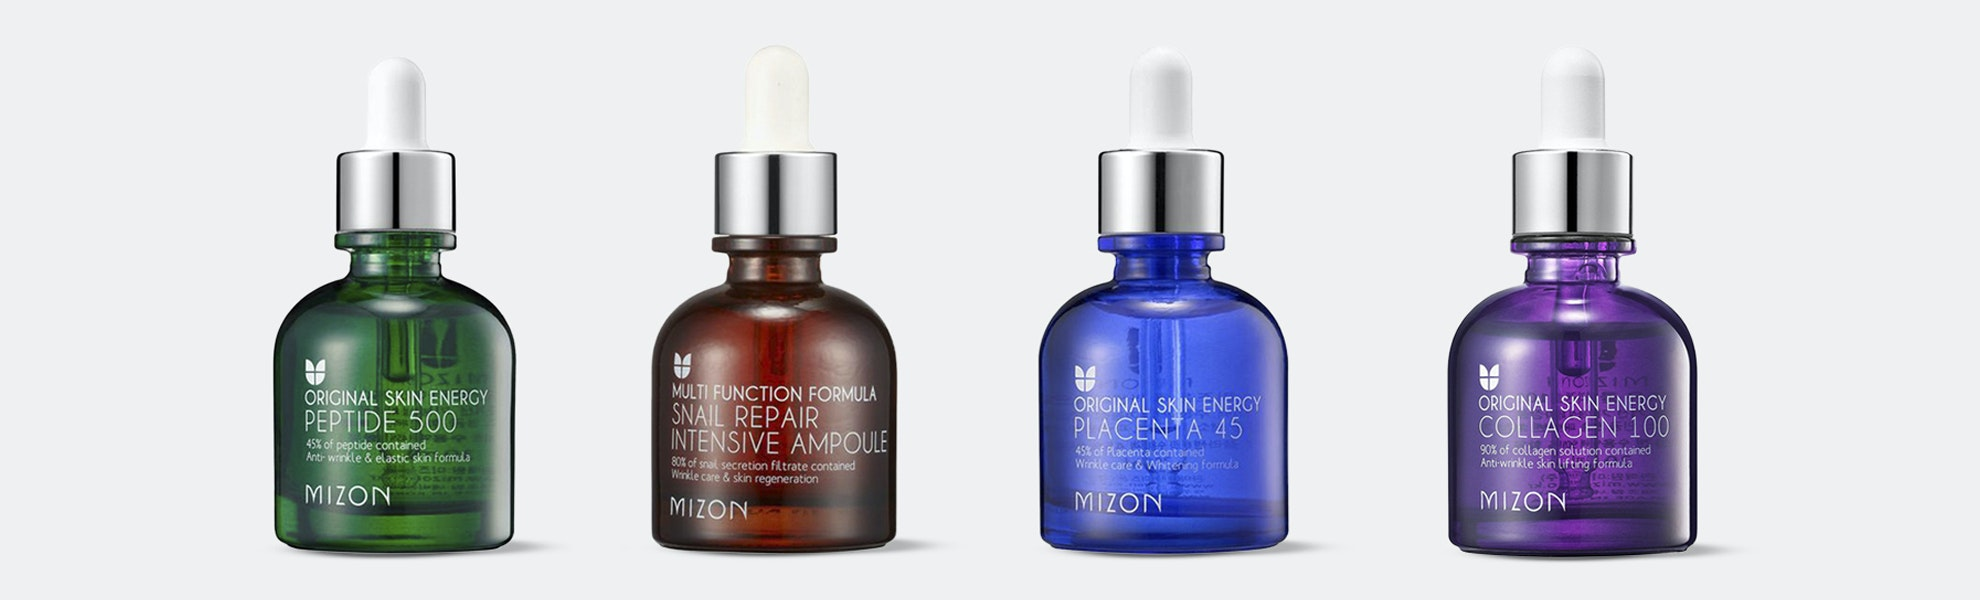 Mizon Original Skin Energy 30mL  Serums  (Pick-2)